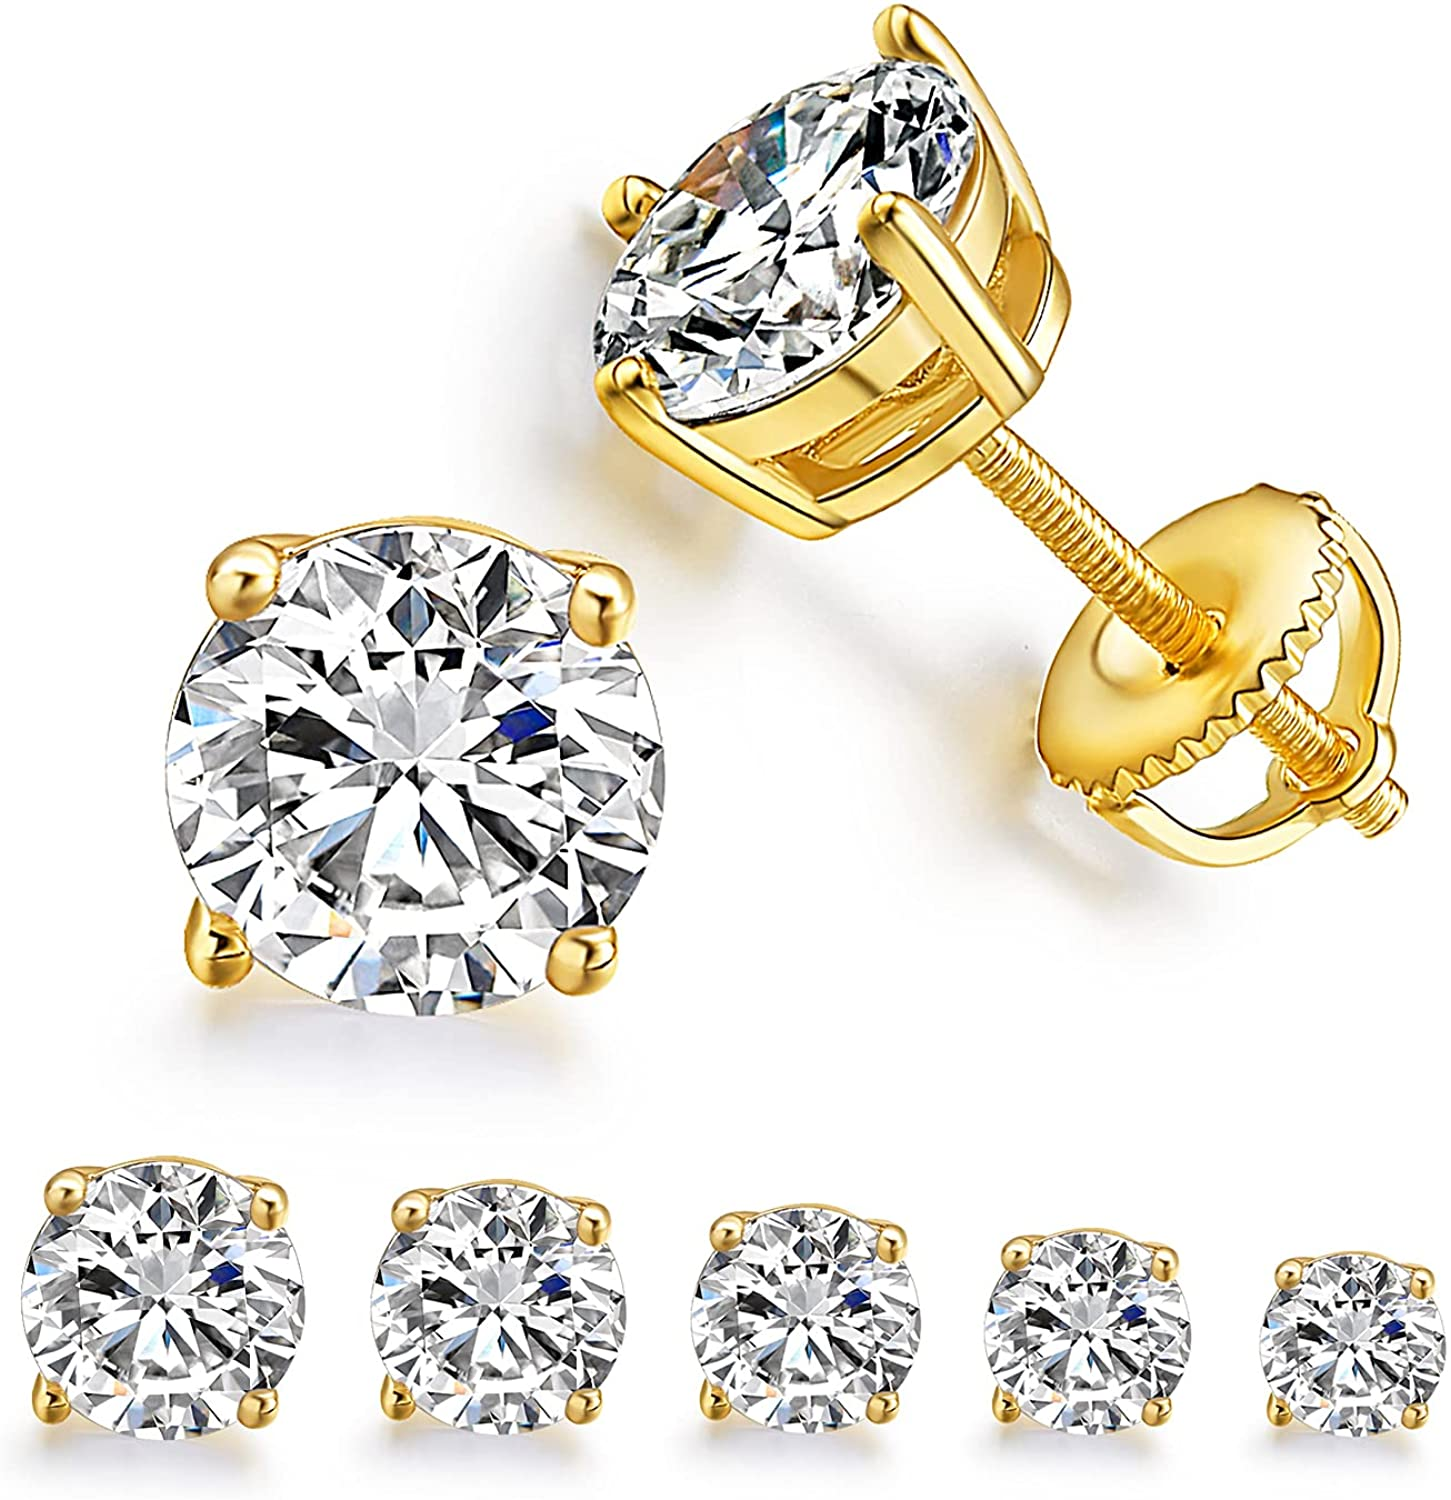 5 Pairs 18K Yellow Gold Plated Round Cut Clear Cubic Zirconia Stud Earring Pack with Screw Back Earring Set